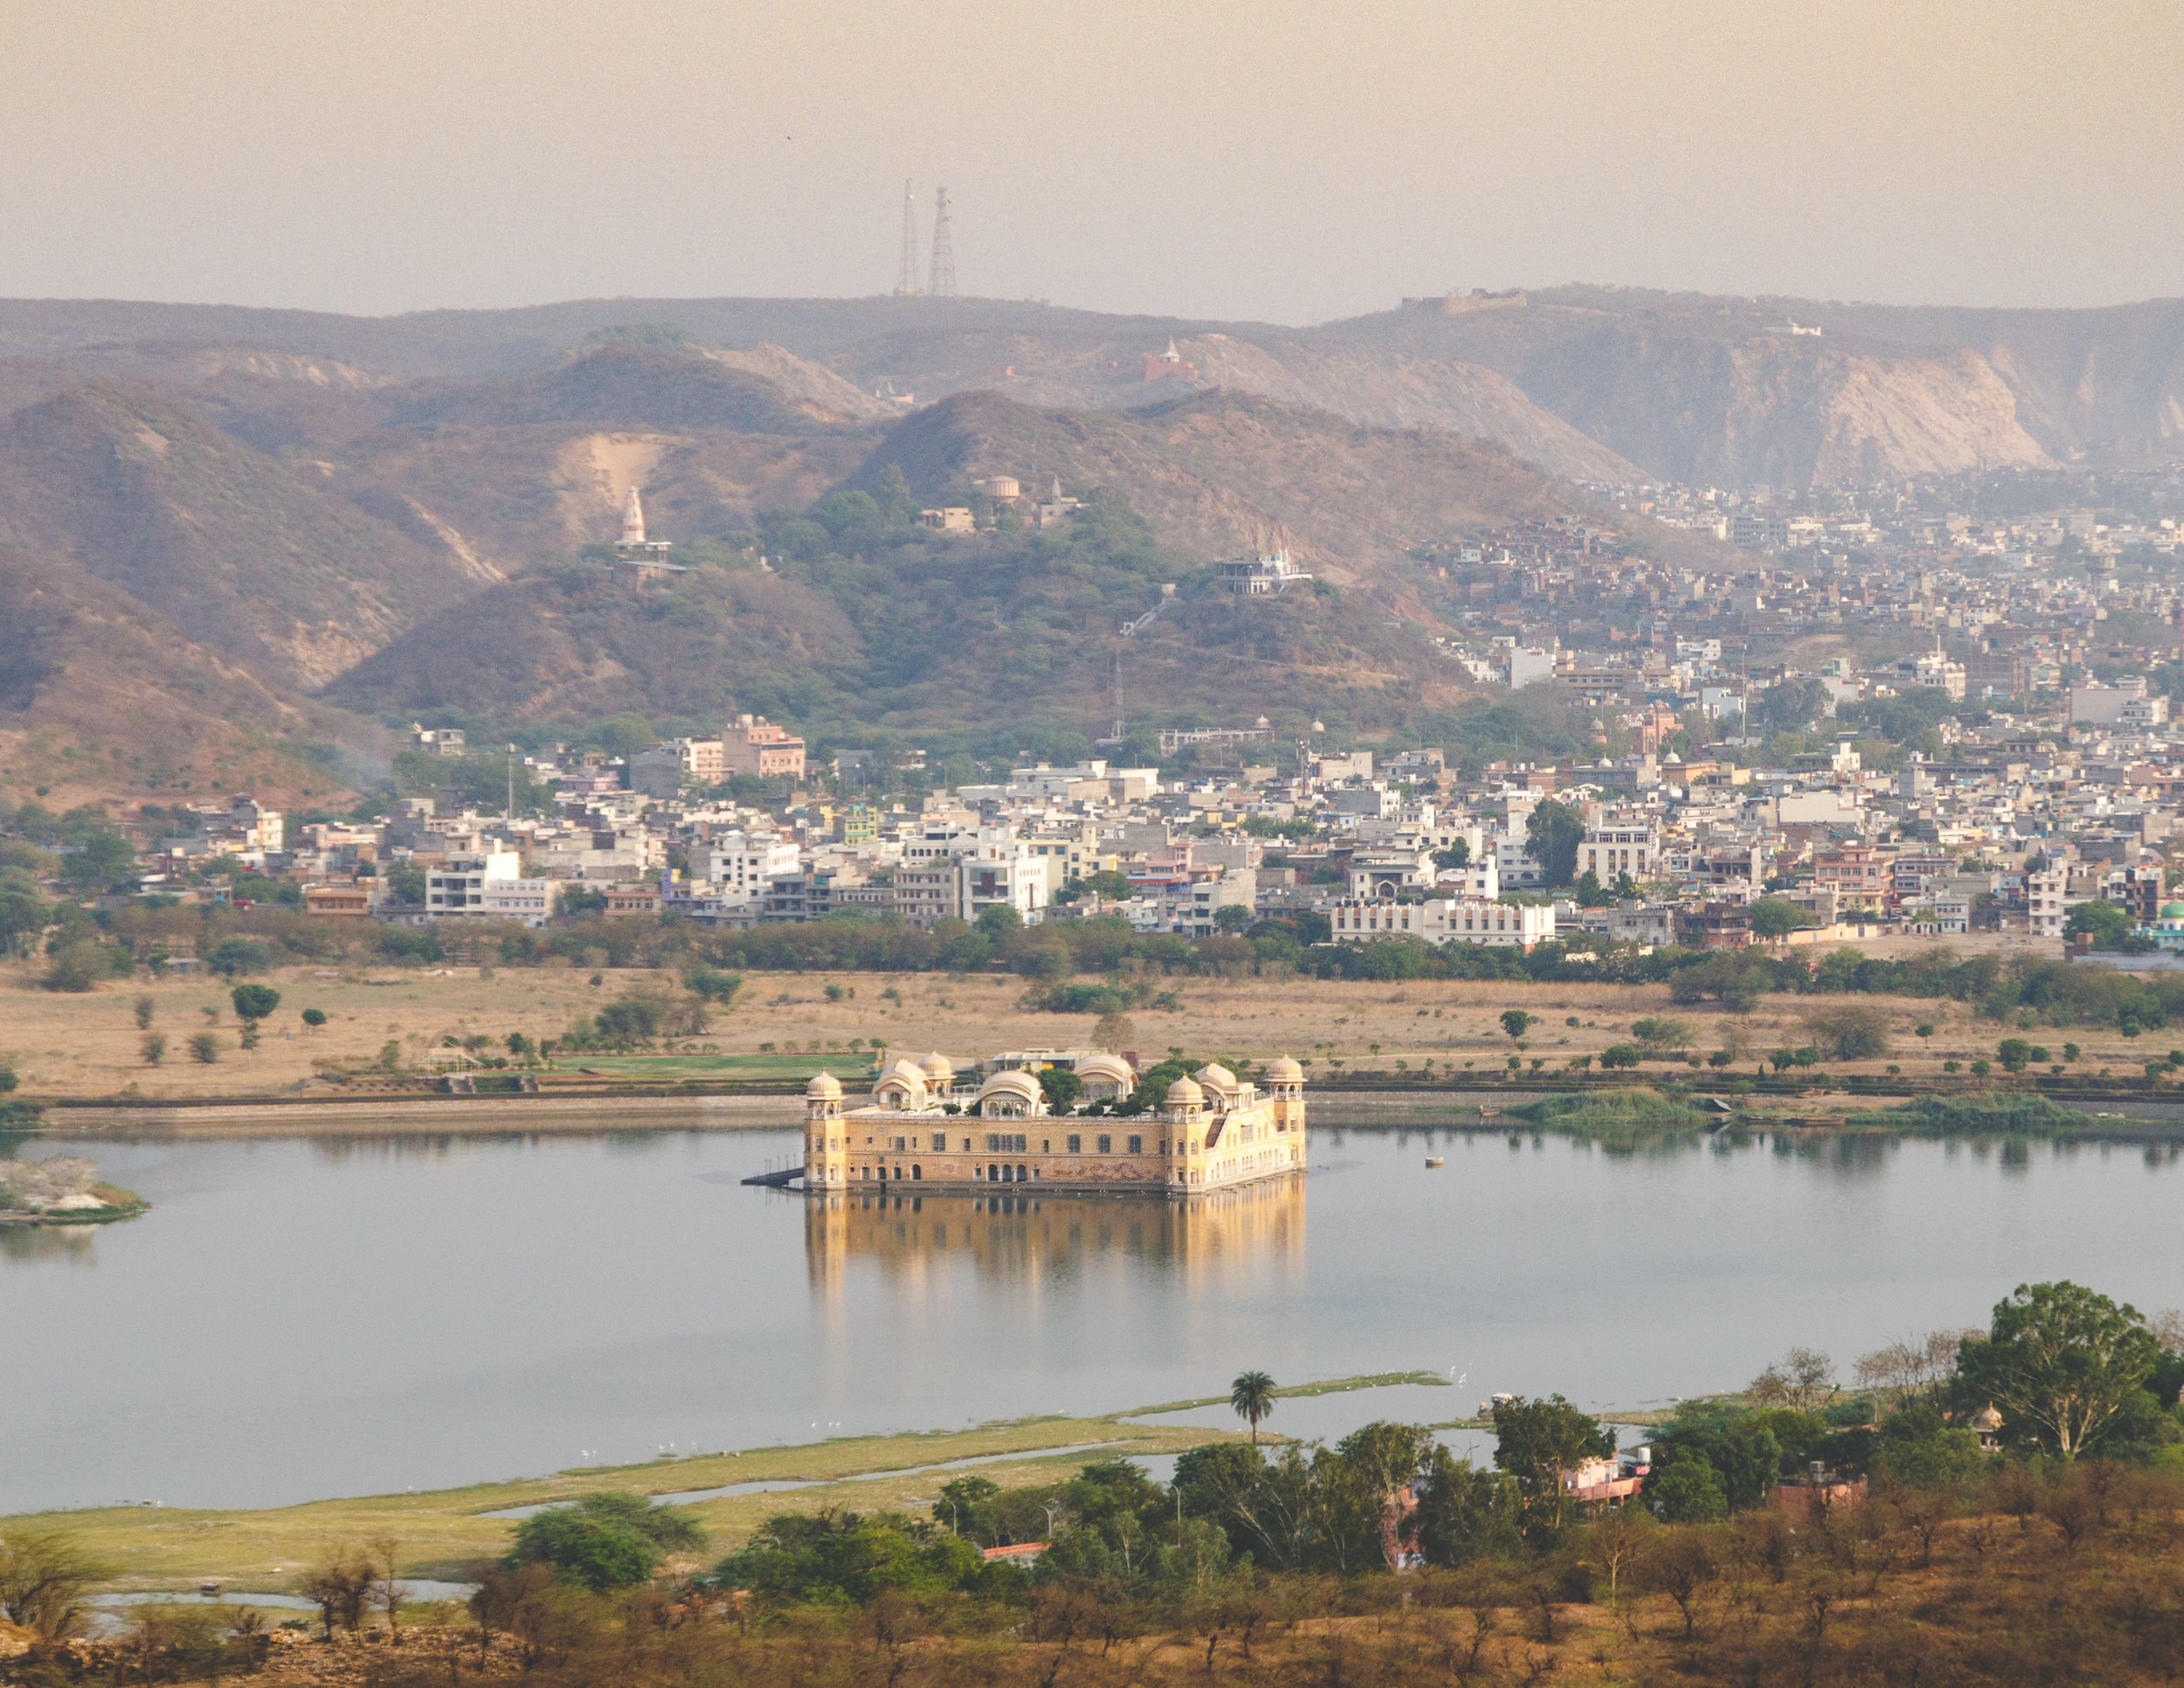 Jal Mahal from Nahargarh Fort, Jaipur